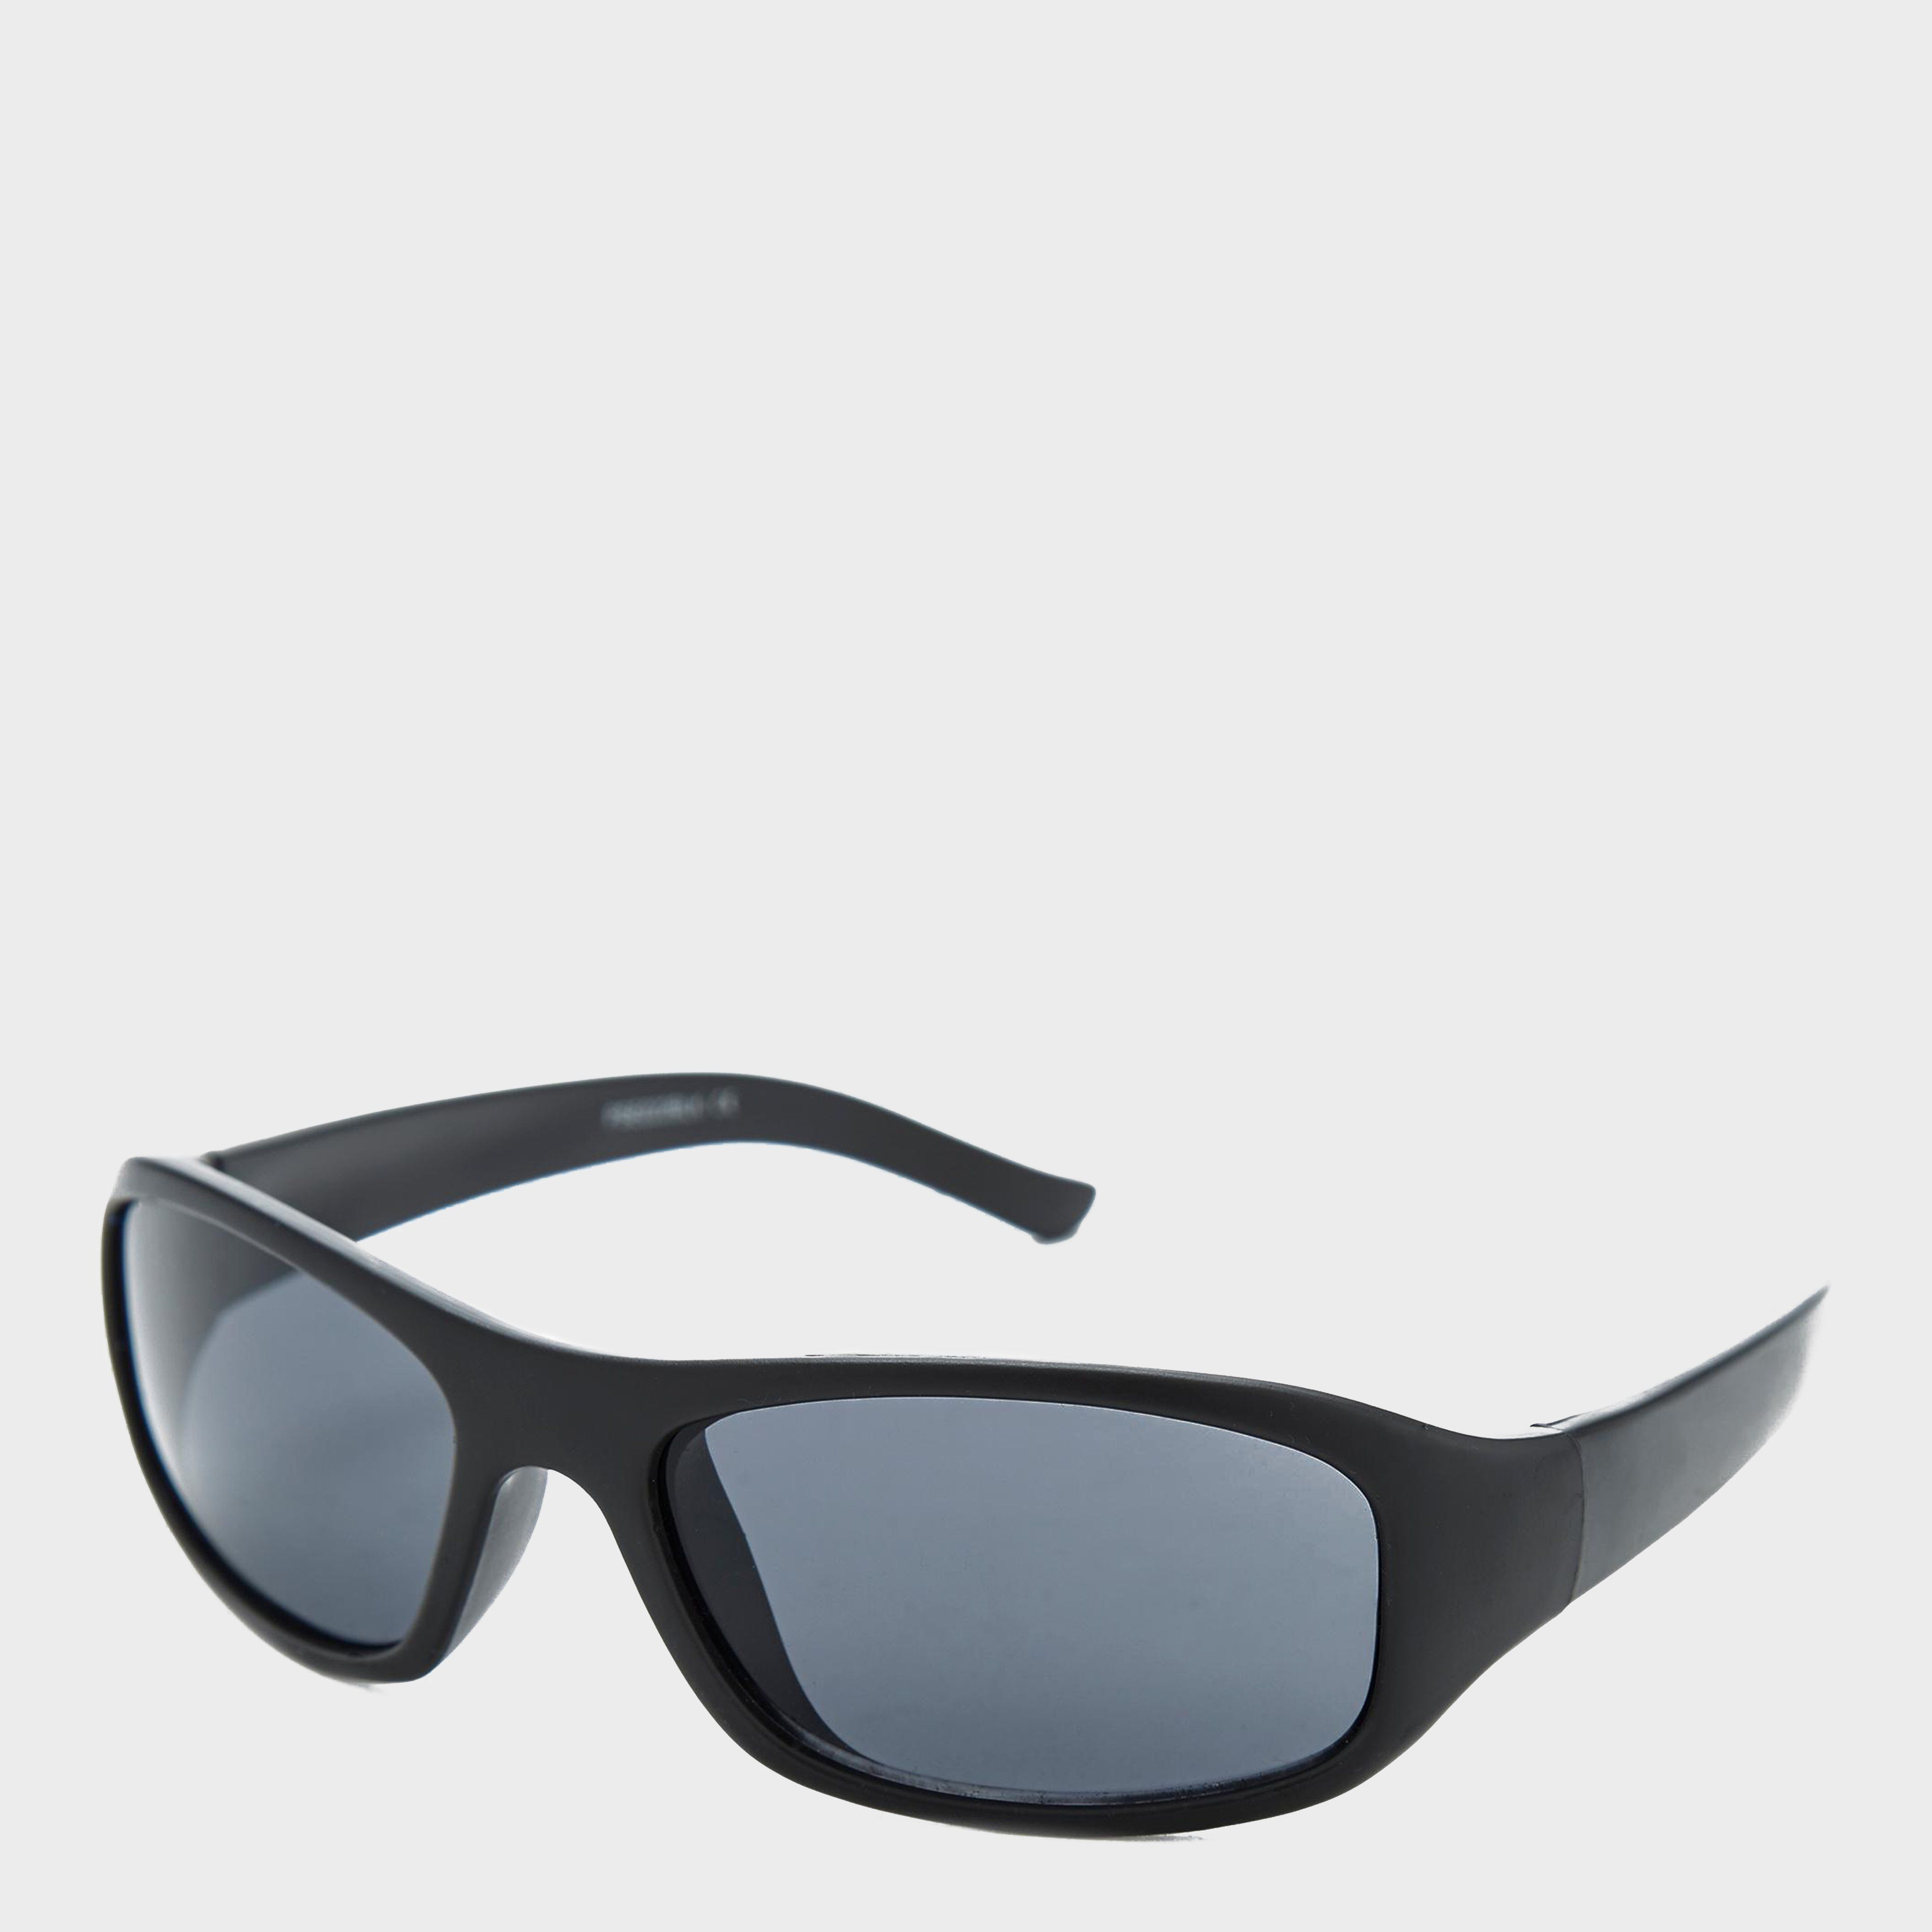 PETER STORM Boys' Rounded Wrap-Around Sunglasses